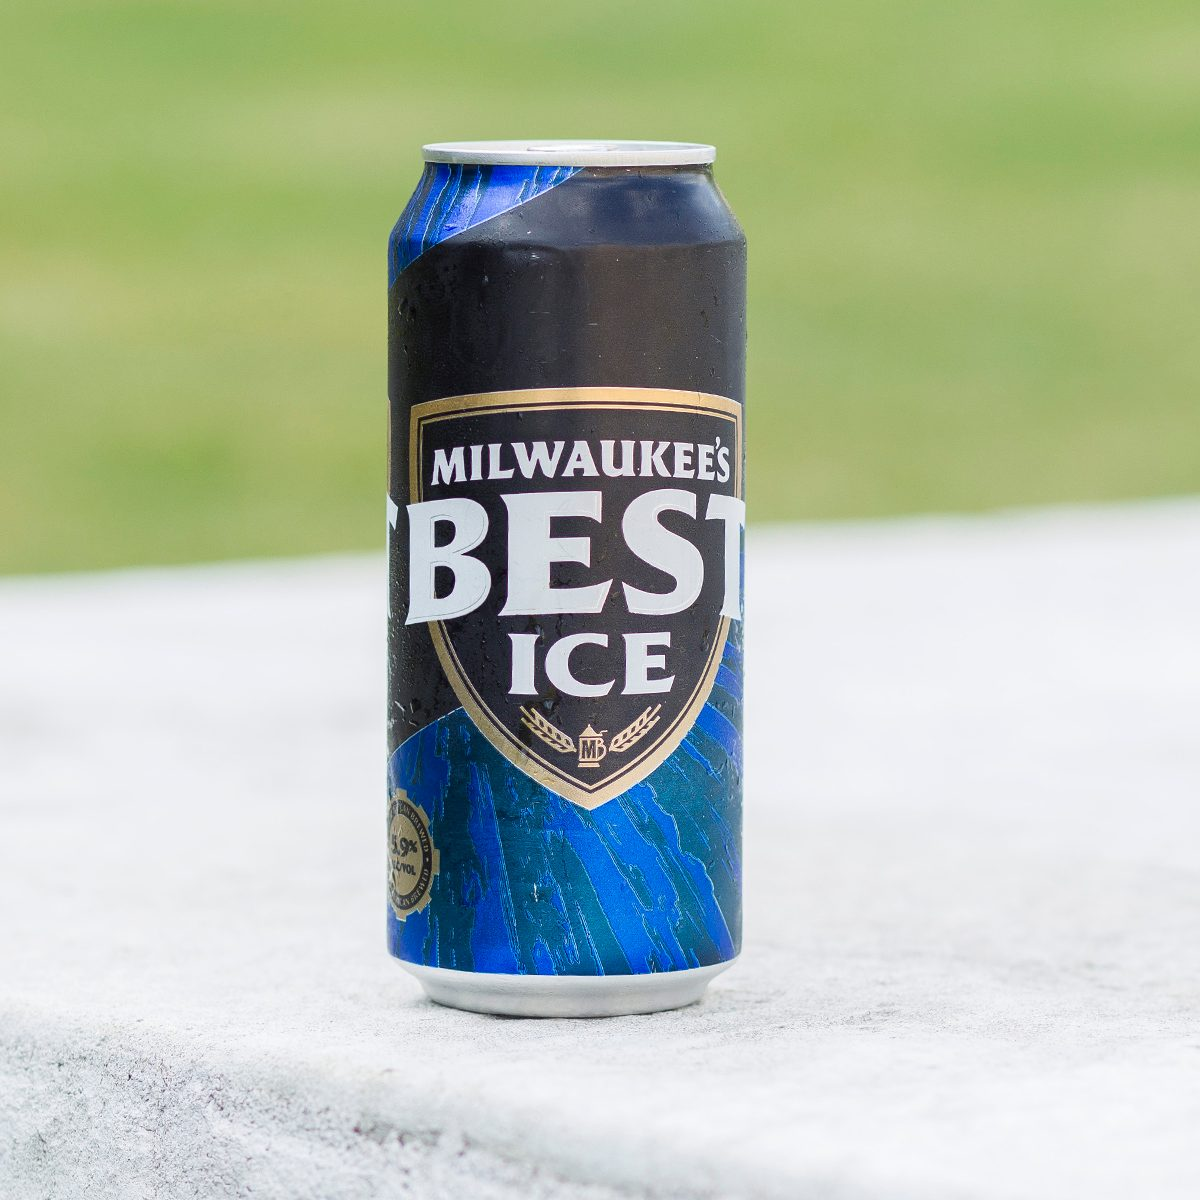 Can of Milwaukee's Best Ice beer